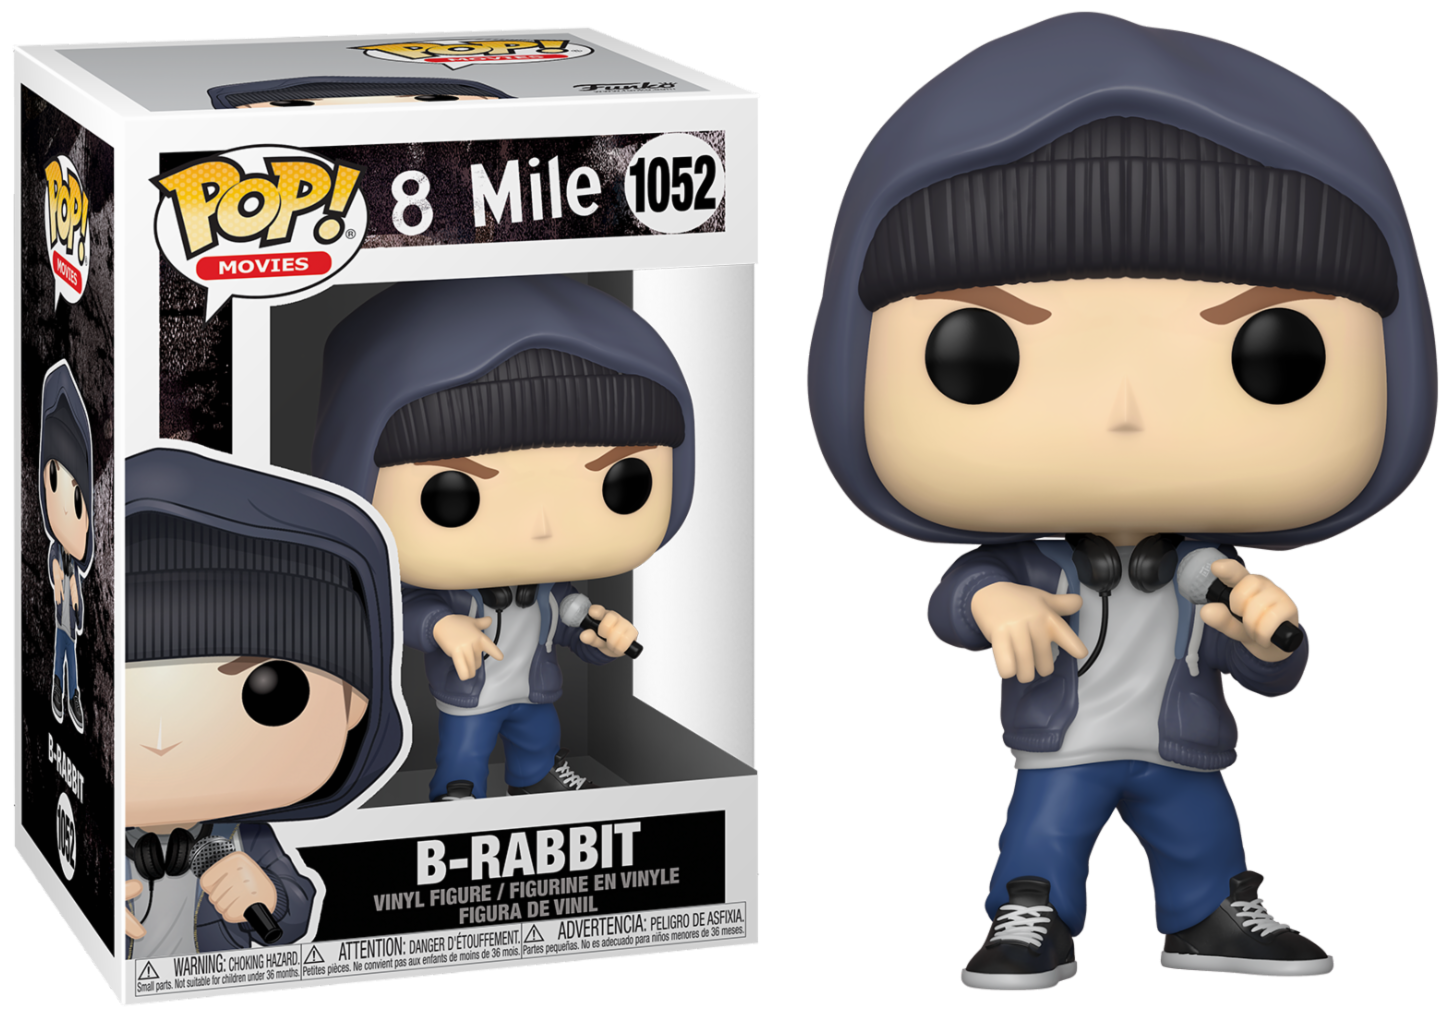 8 mile - Bobble Head Funko Pop N°1052 : B-Rabbit